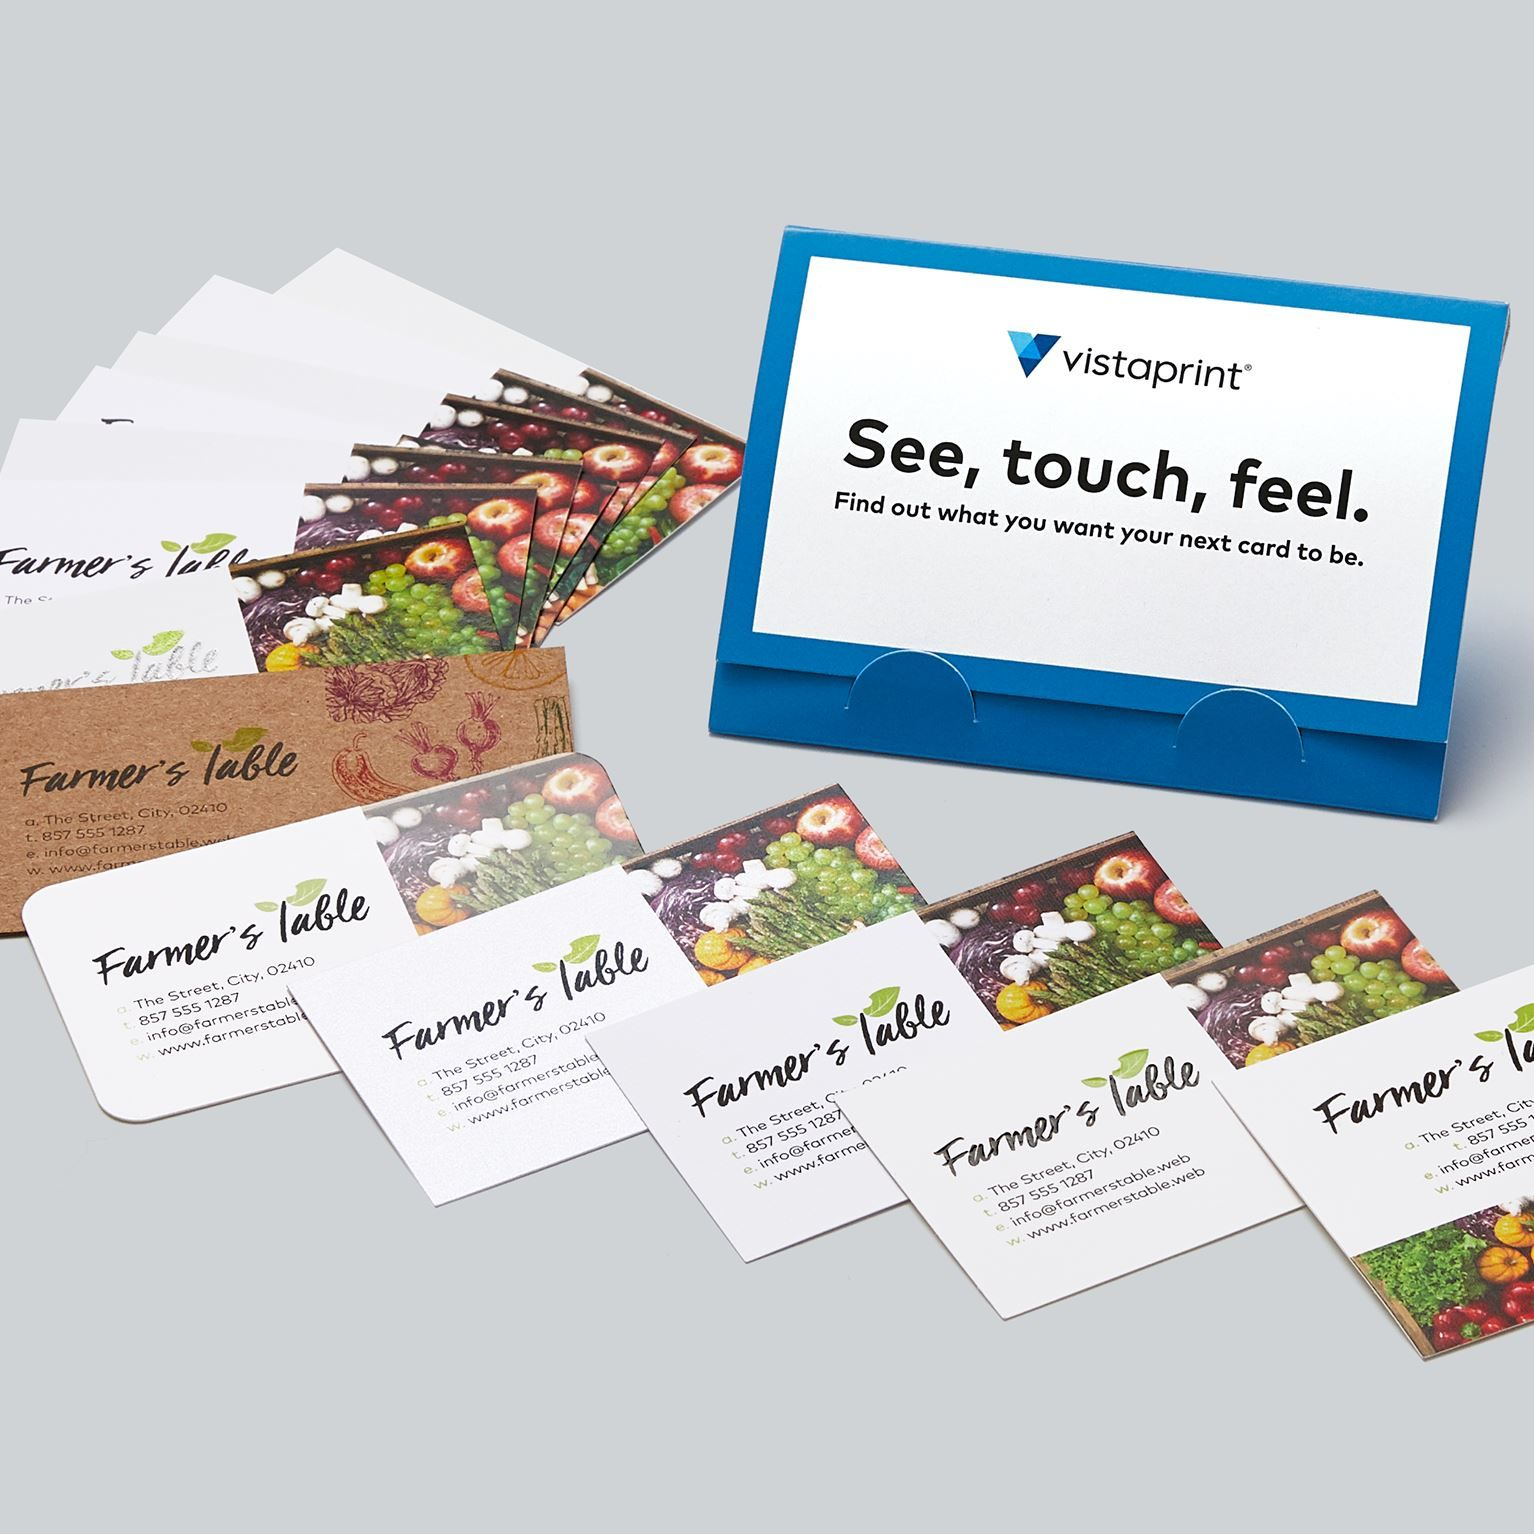 Business Cards Make Your Own Custom Cards Vistaprint Free Business Cards Vistaprint Business Cards Printing Business Cards